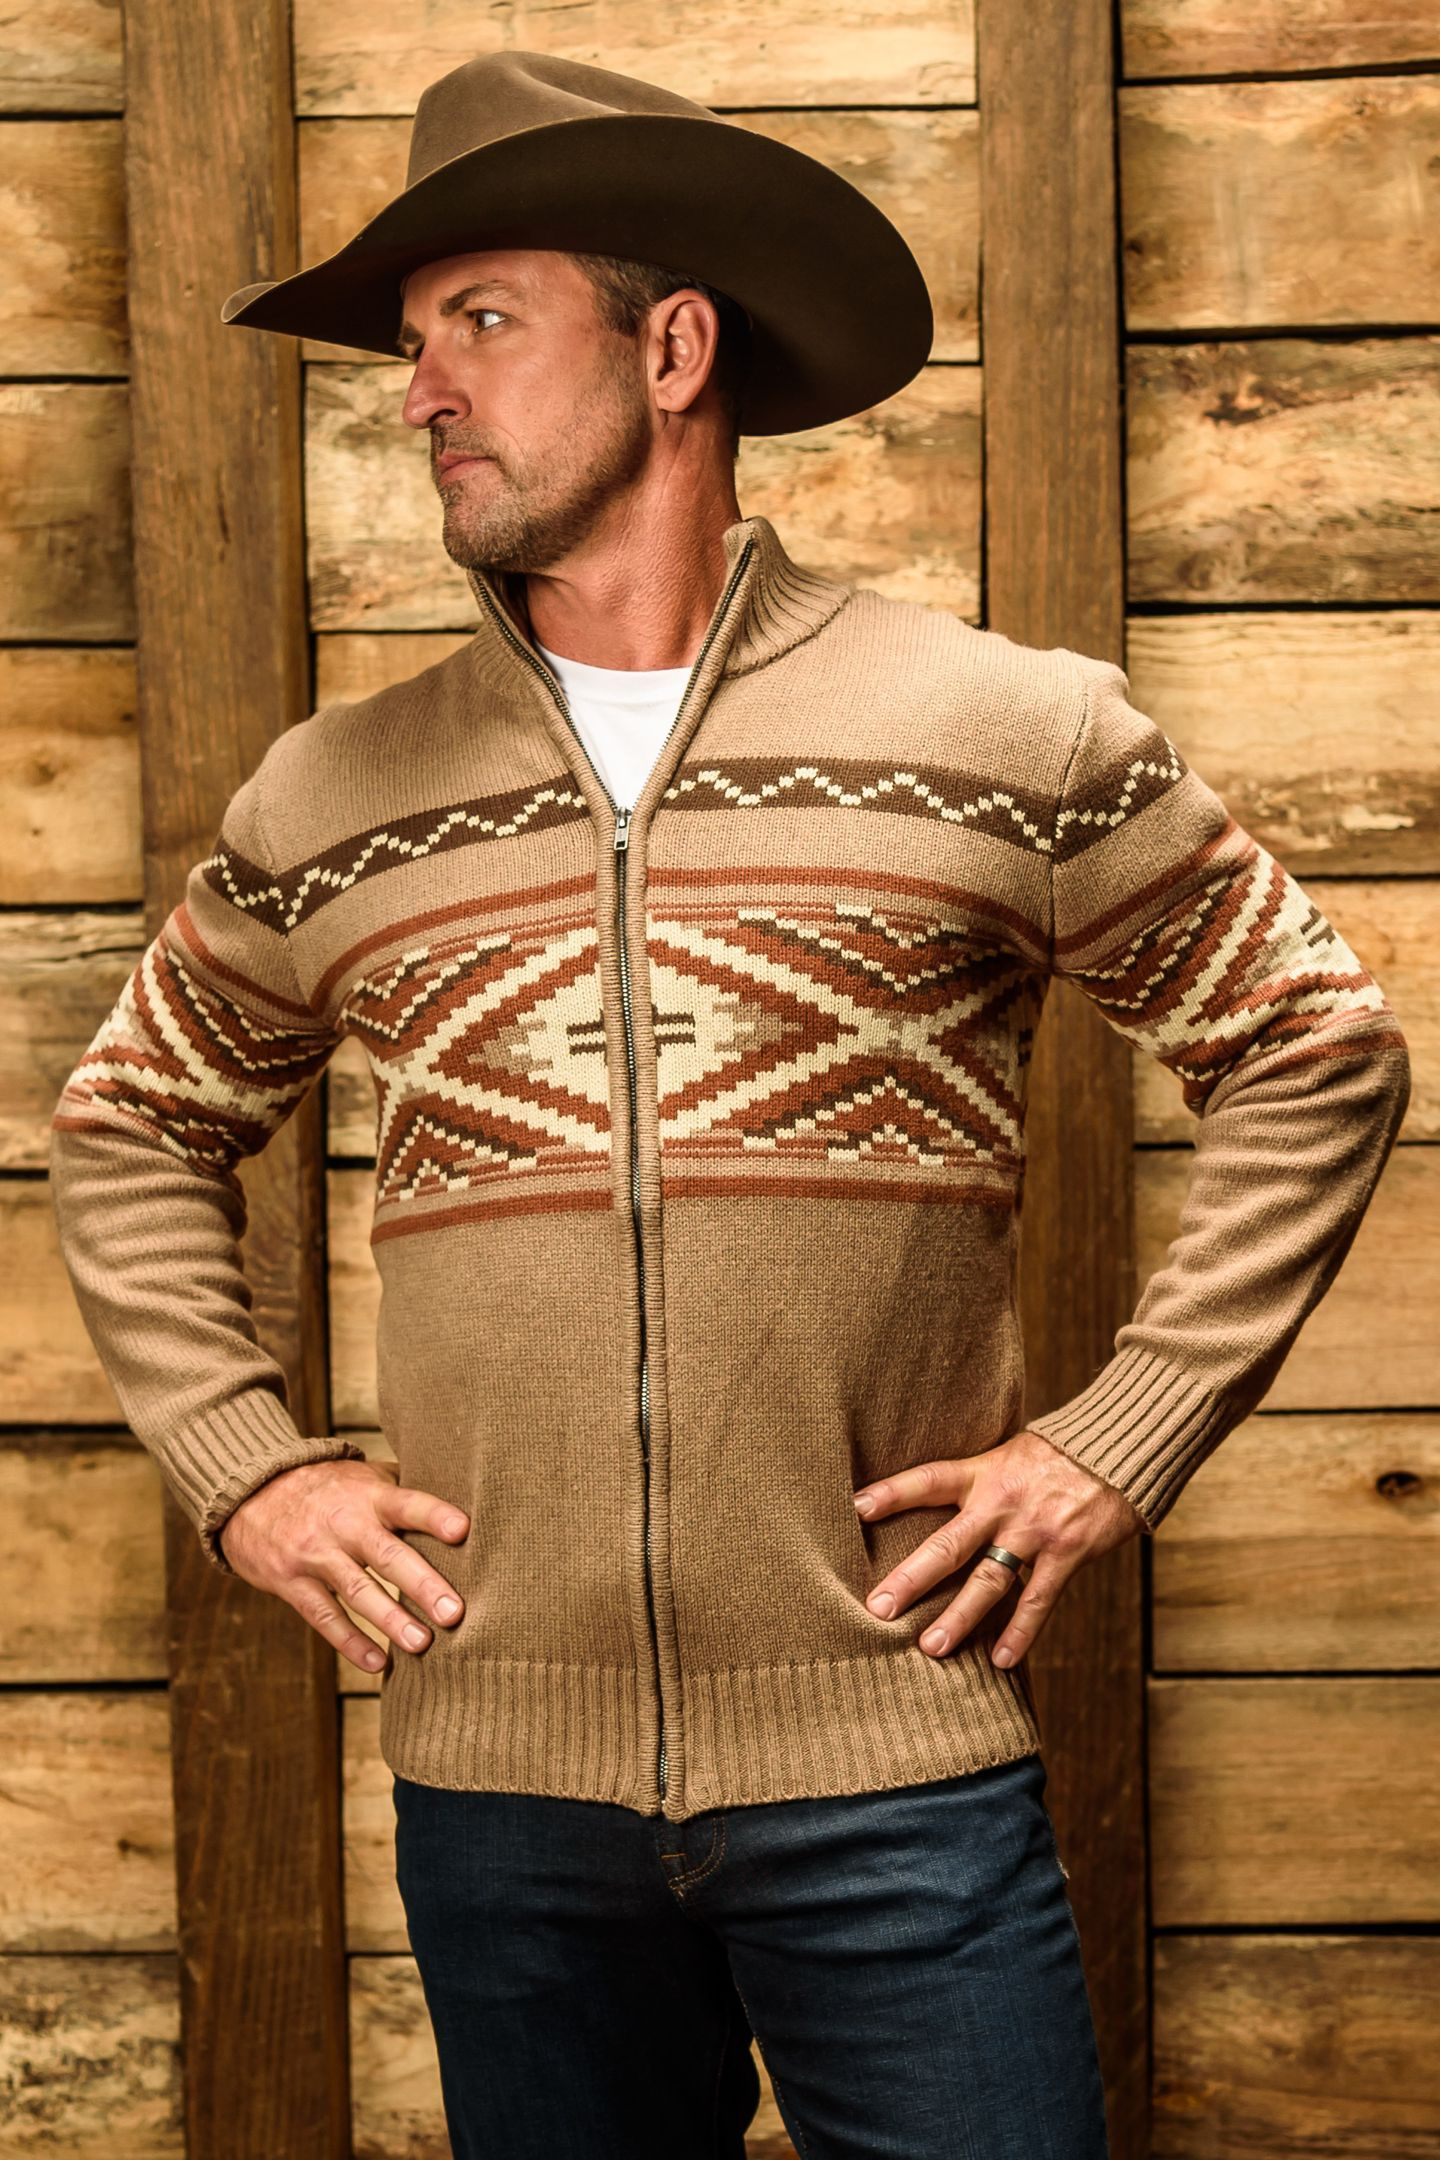 He Looks Serious But He S Thinking About Tacos Our New Stetson Outerwear Is Here To Keep Y Mens Western Jackets Mens Cardigan Sweater Western Wear Outfits [ 2160 x 1440 Pixel ]